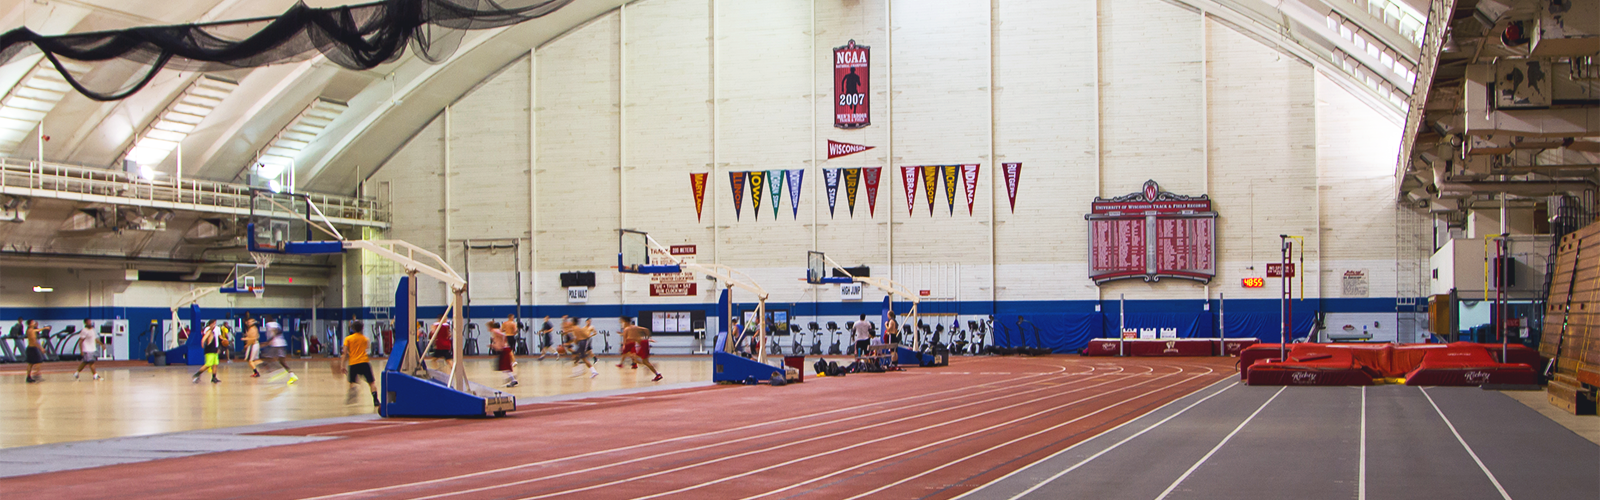 An image of the interior of the Camp Randall Sports Center.